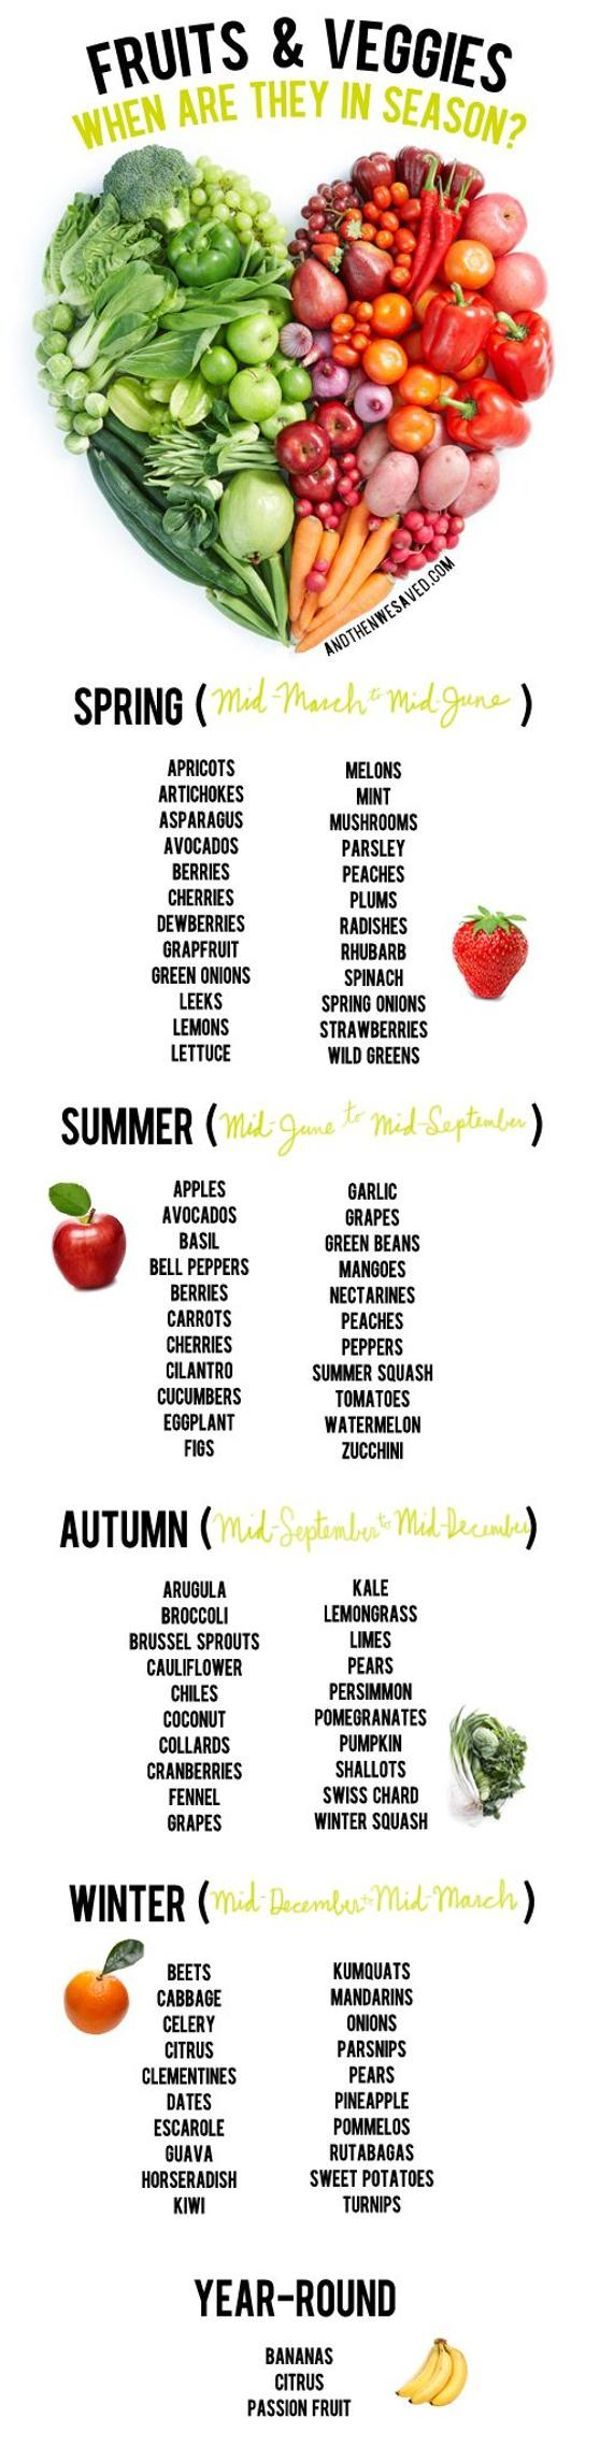 Fruits & Veggies - When Are They In Season?